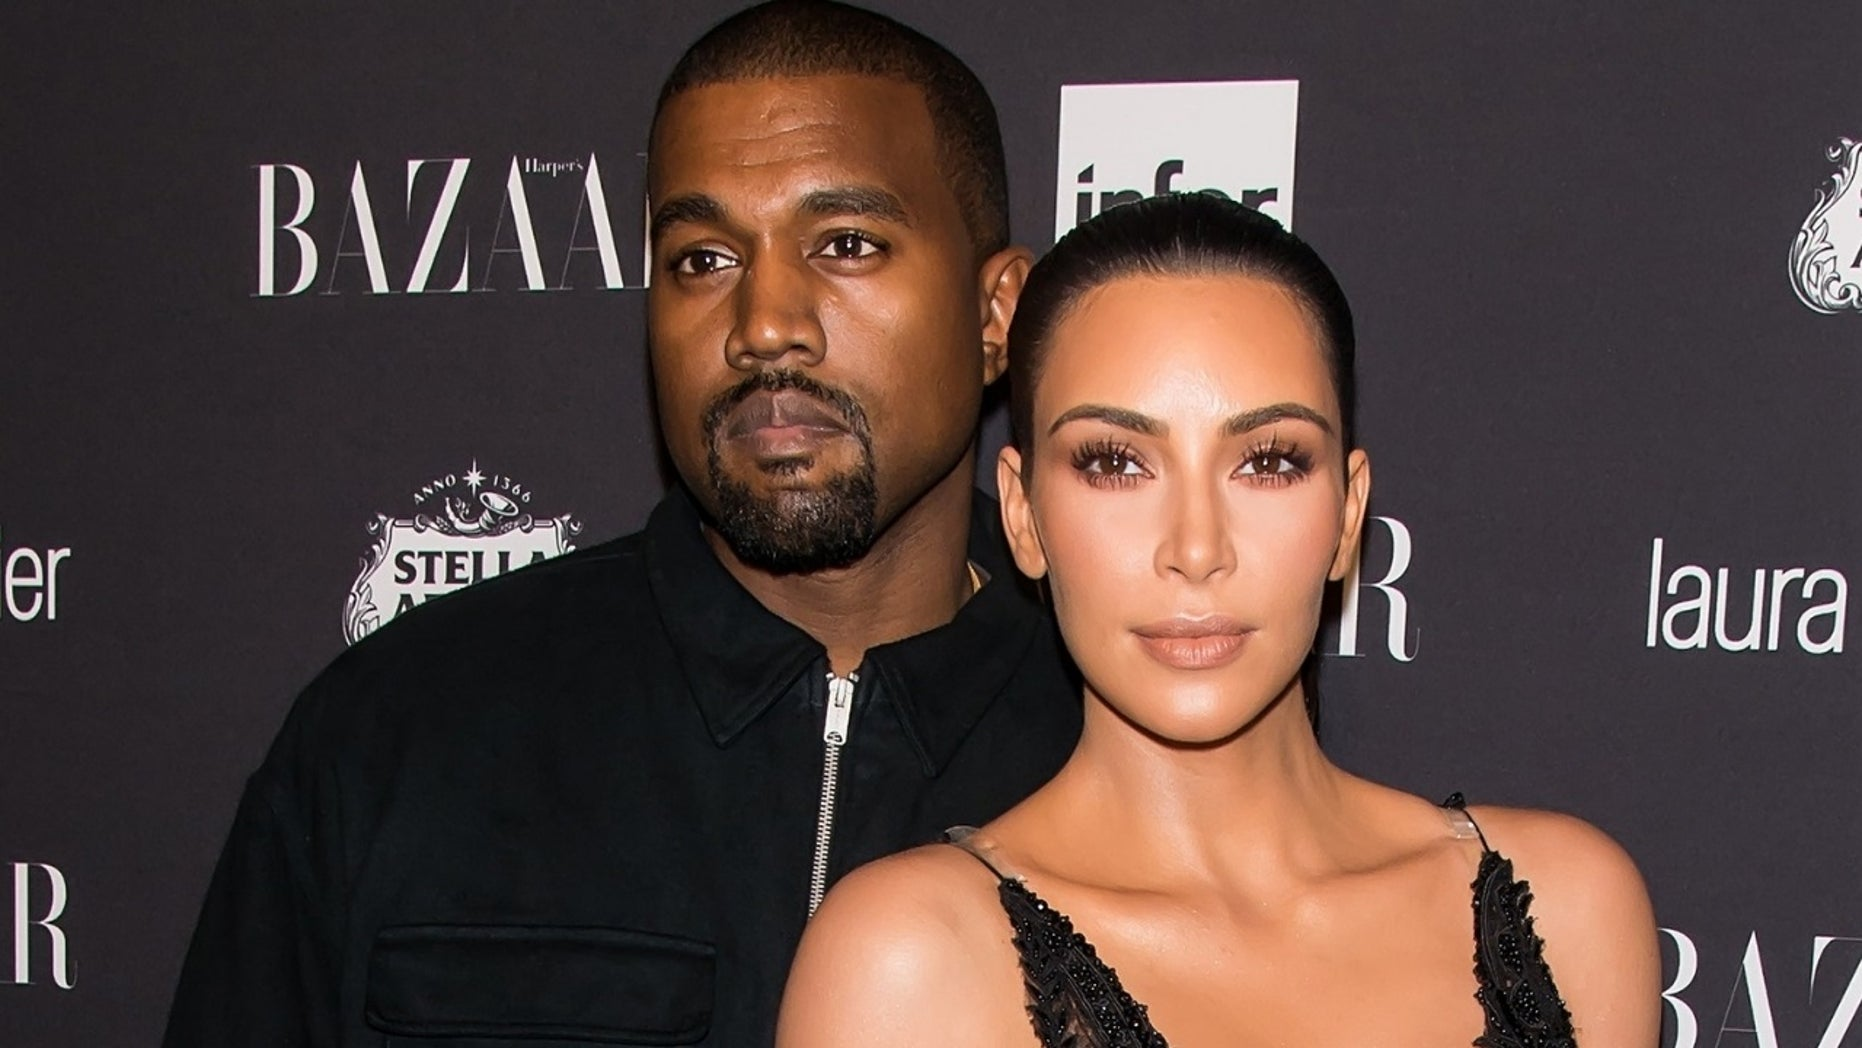 Kim Kardashian West revealed her husband Kanye West gets upset sometimes when she posts a sexy picture of herself onto social media.